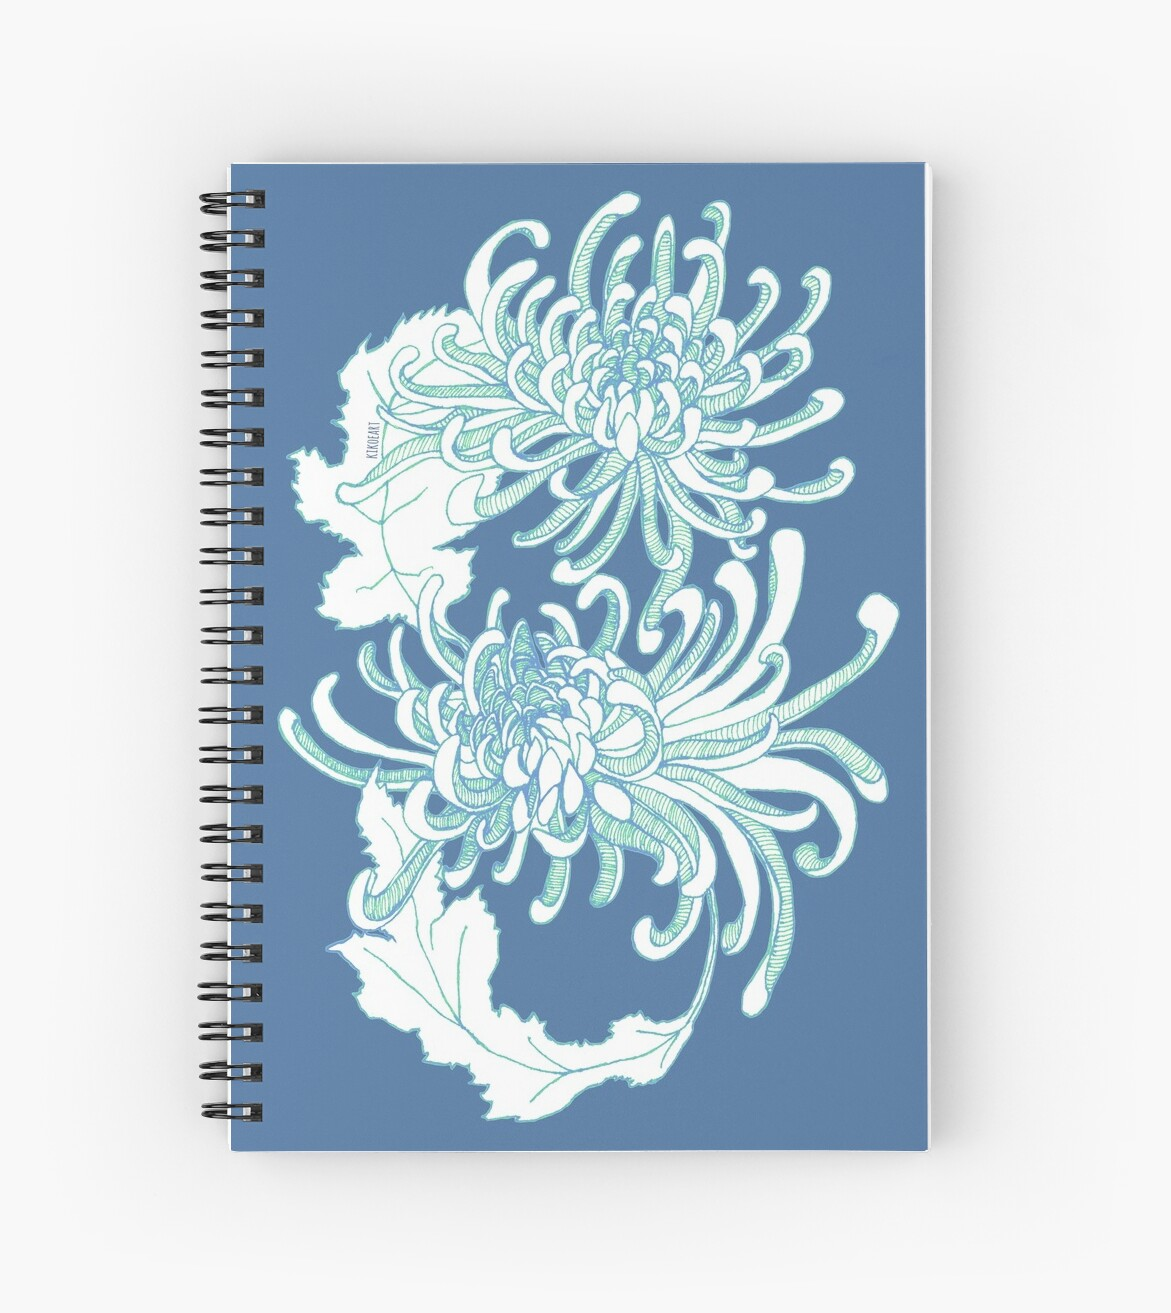 Chrysanthemum Infinity - Green and Blue by kikoeart